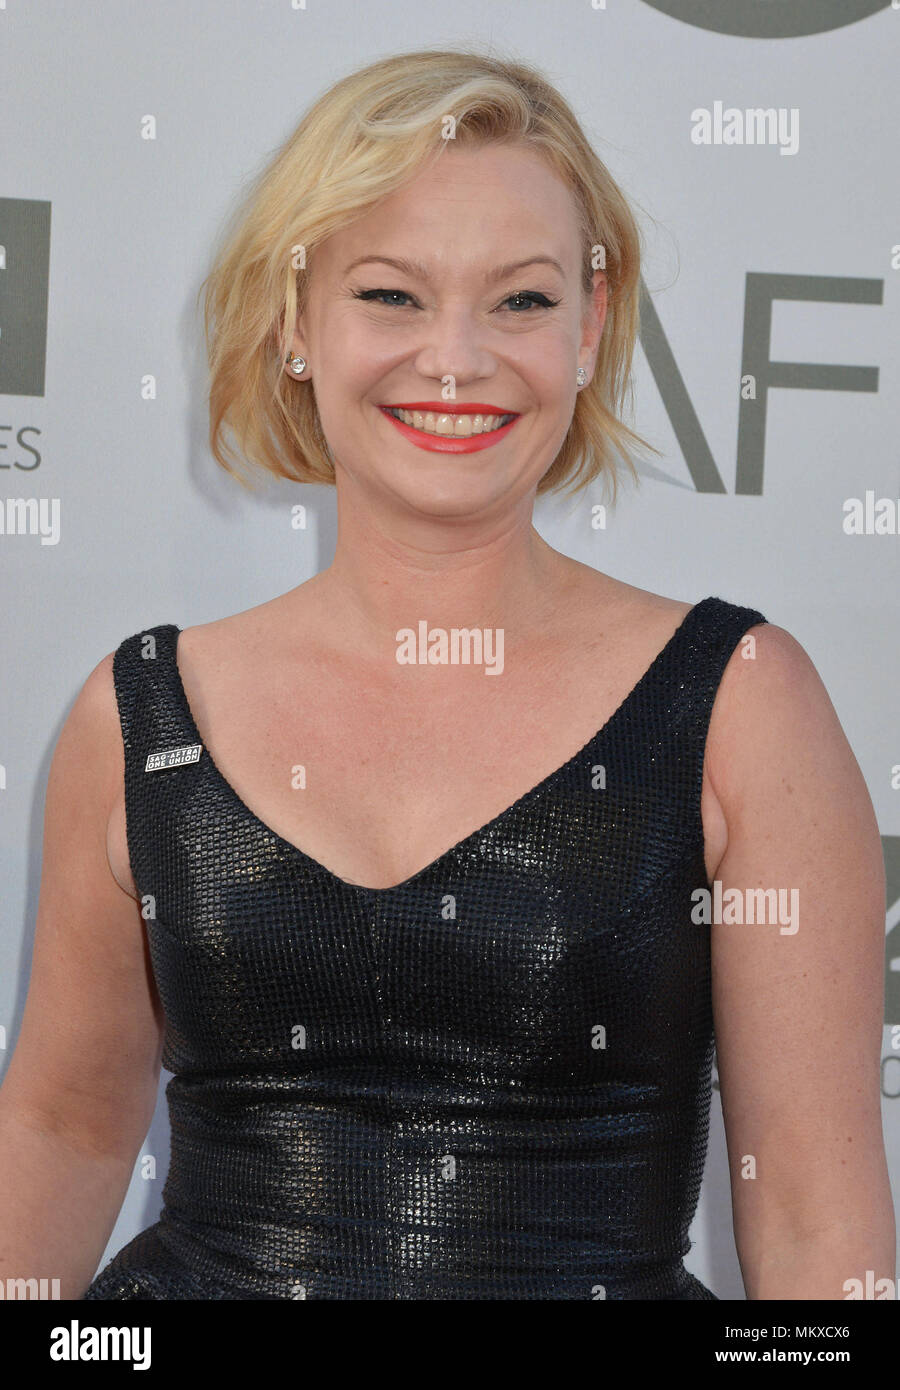 Samantha Mathis 157 Honored With American Film Institute Life Achievement Awards Gala At The Dolby Theatre In Los Angeles Samantha Mathis 157 Red Carpet Event Vertical Usa Film Industry Celebrities Photography Bestof Arts